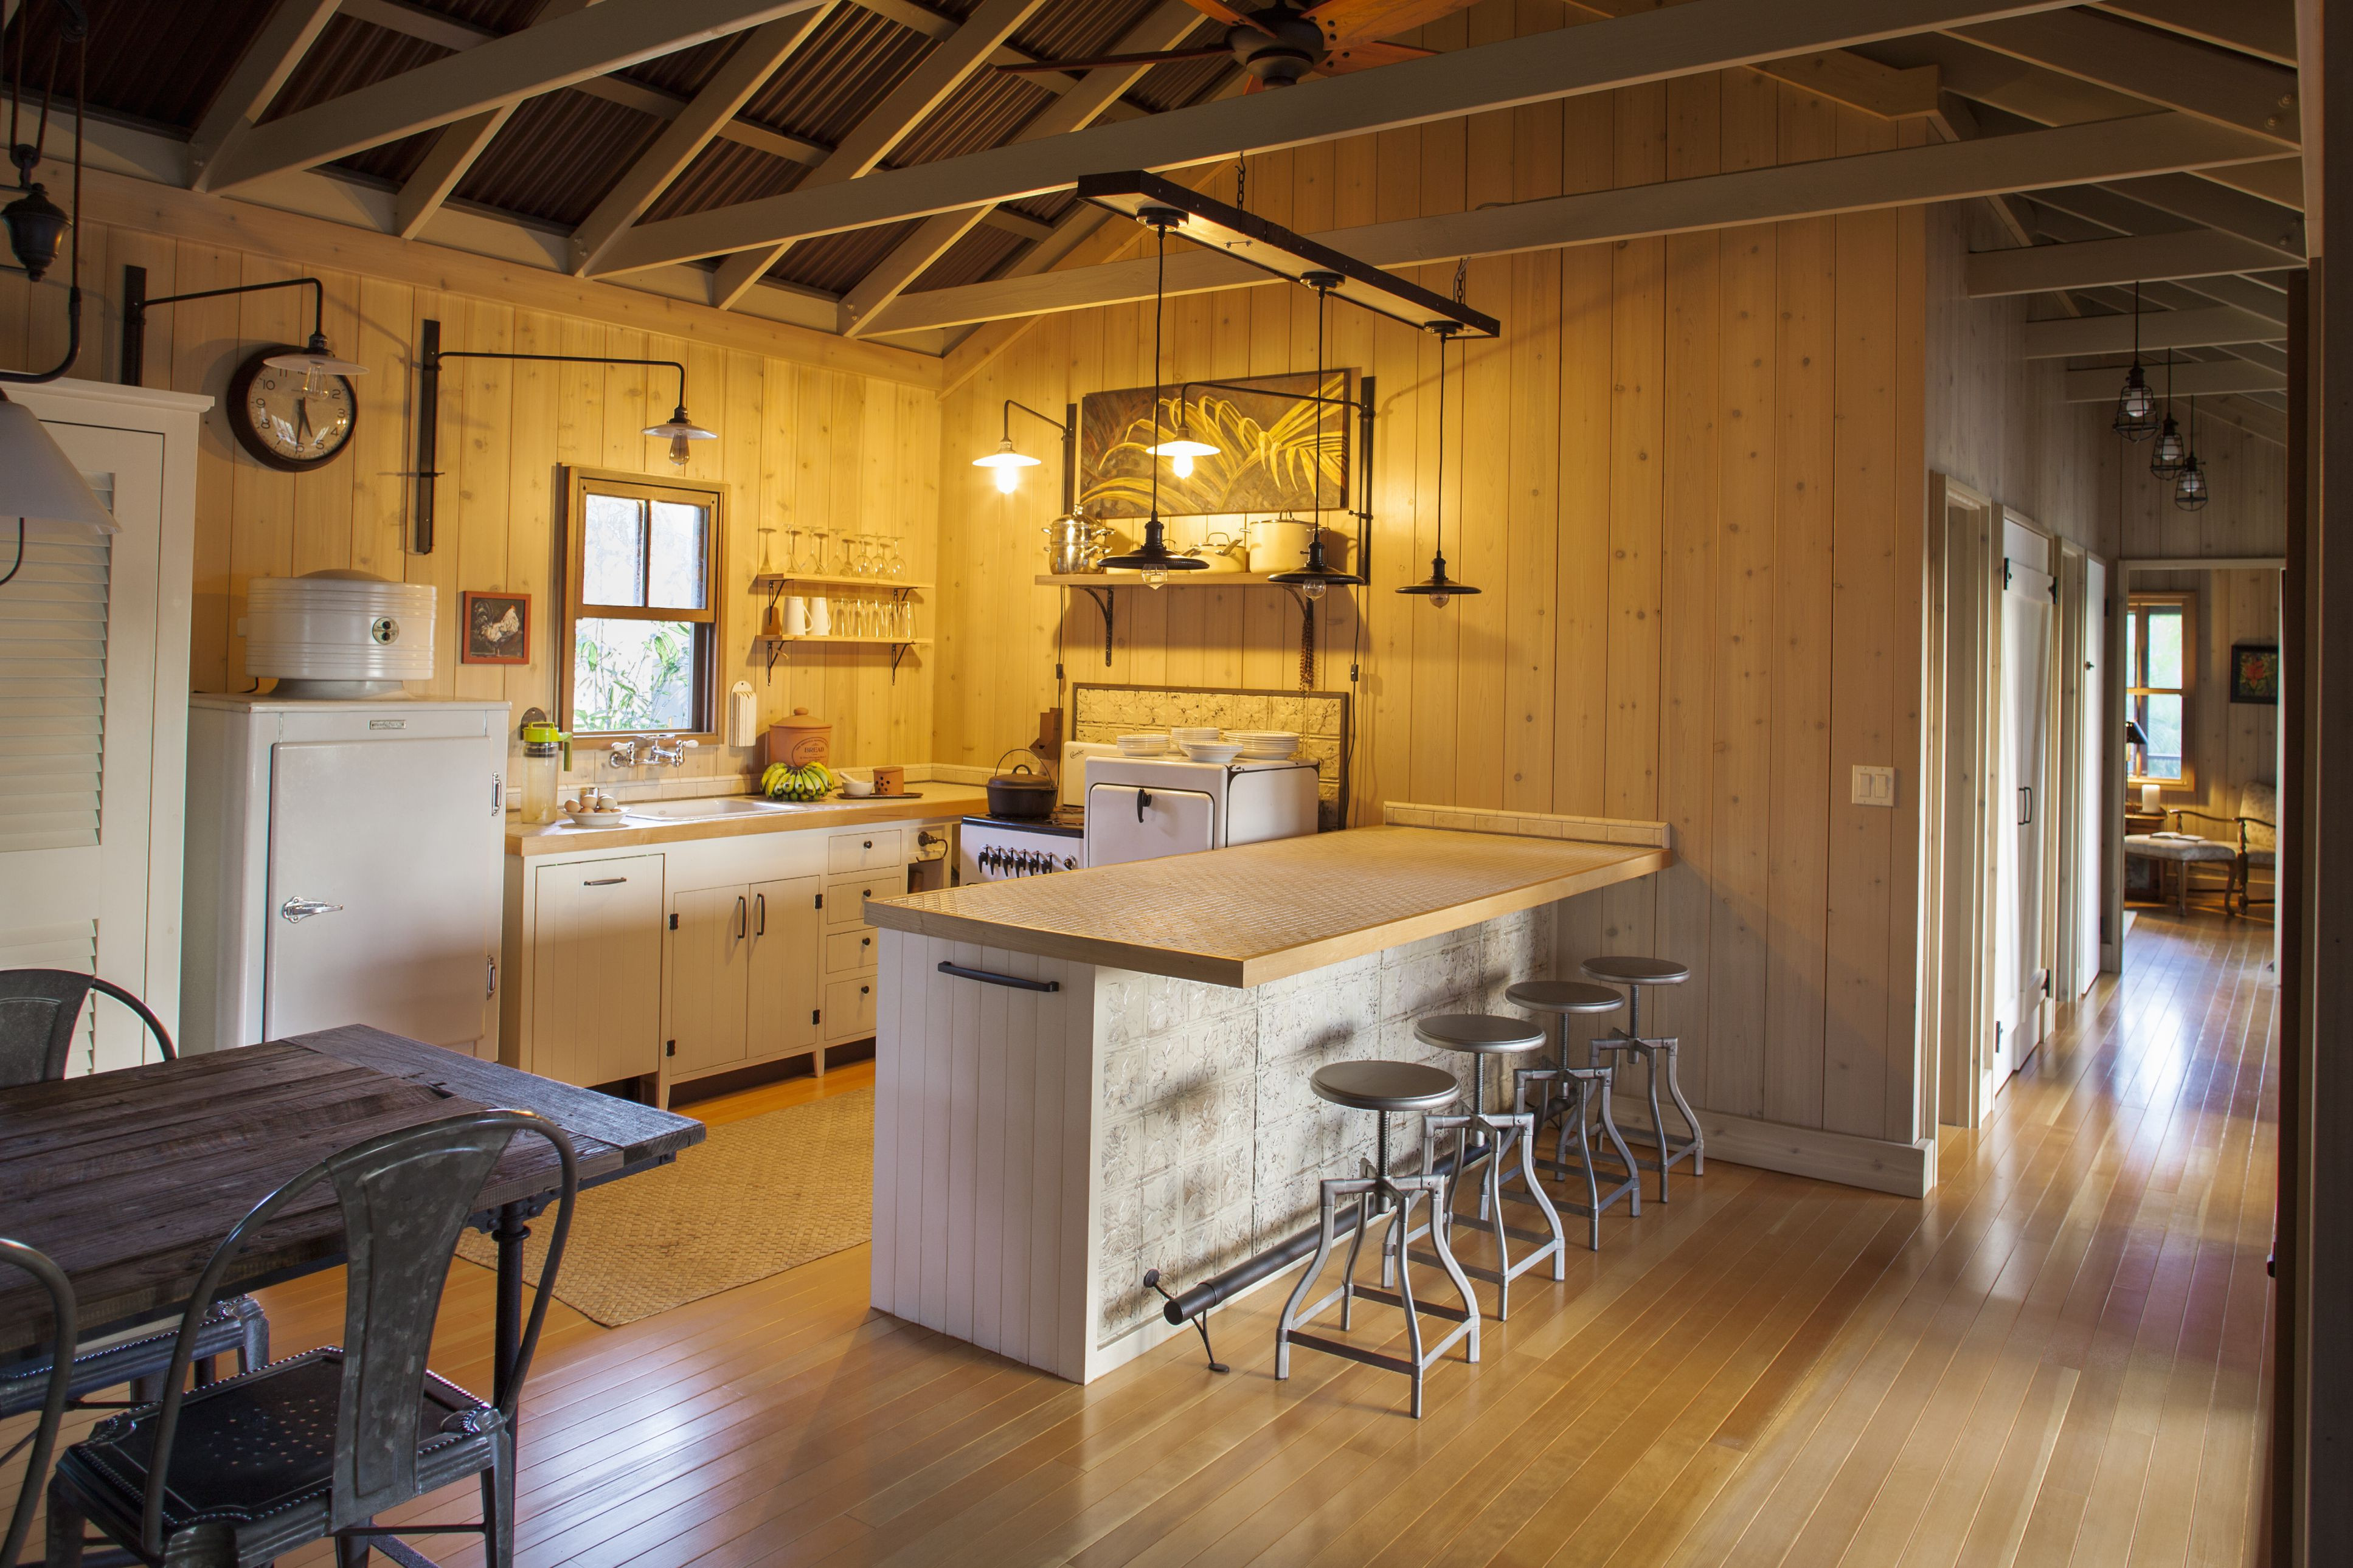 hardwood floor refinishing buffalo ny of country or rustic kitchen design ideas intended for kitchen wood floor and open beam ceiling 583805041 compassionate eye found 56a4a1663df78cf772835369